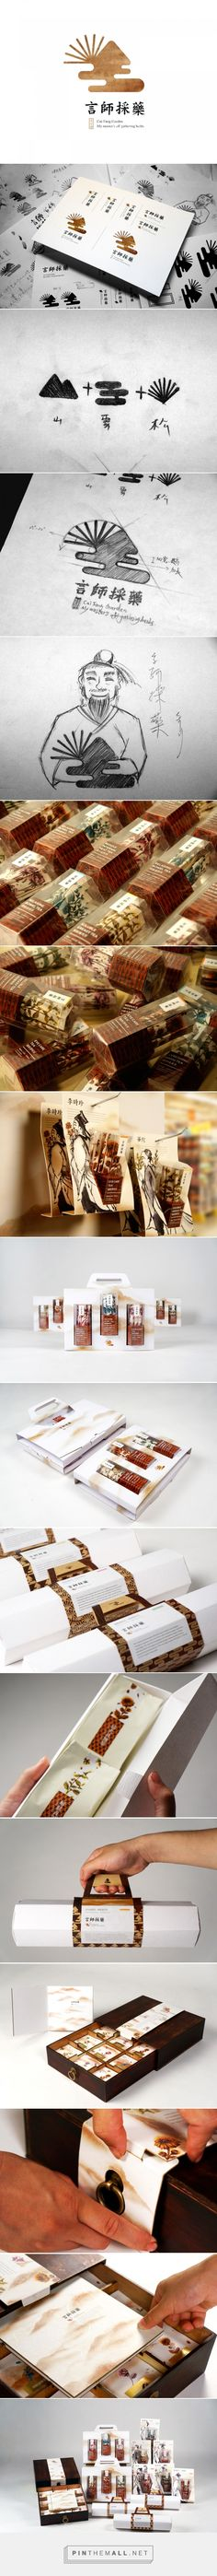 Cai Yao Chinese Medicine (TCM) packaging design concept by Taiwanese students - http://www.packagingoftheworld.com/2017/07/cai-yao-chinese-medicine-student-project.html - created via https://pinthemall.net